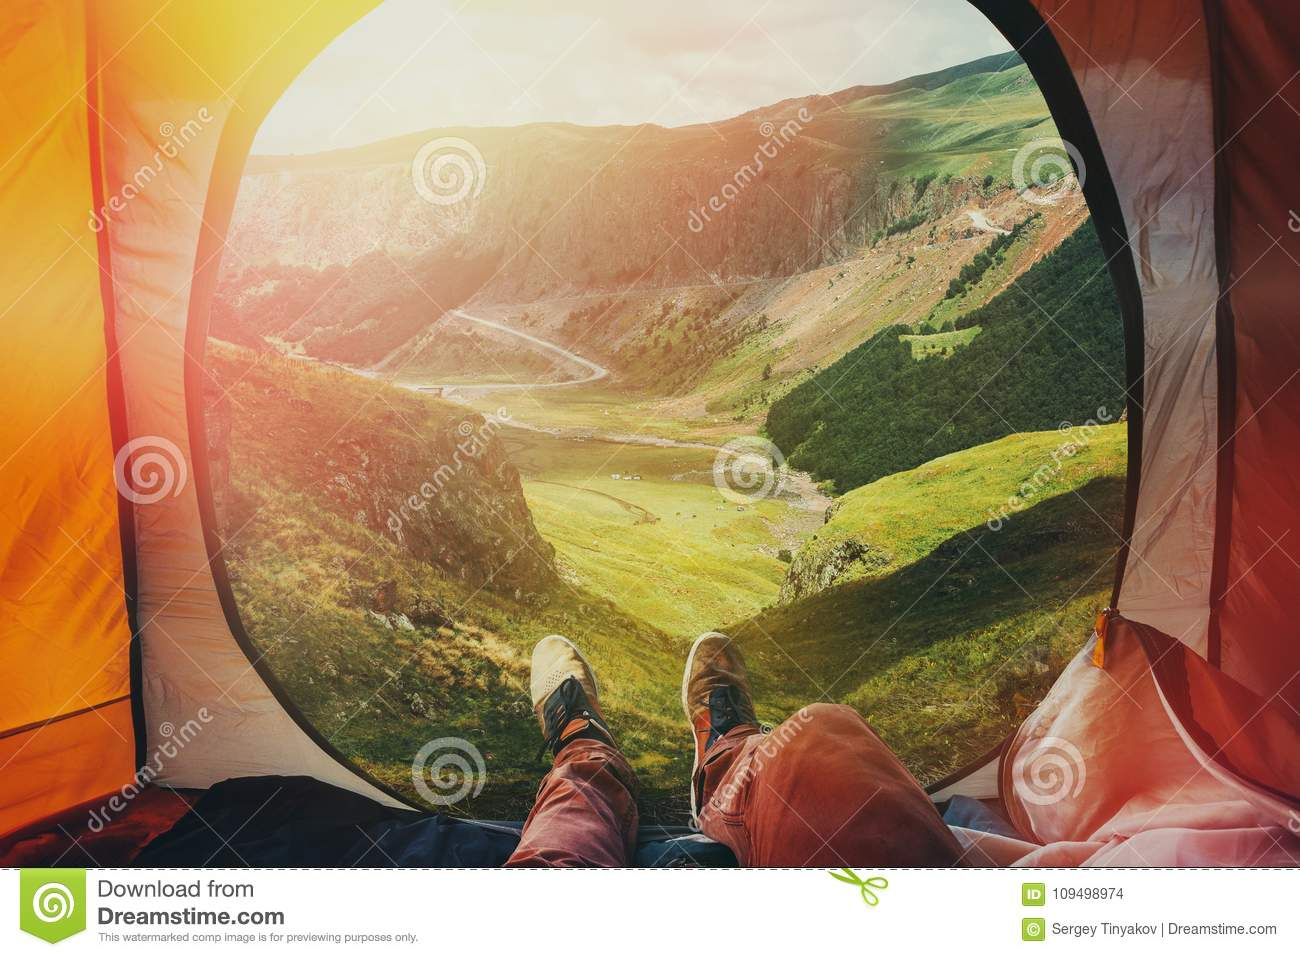 View from inside a tent on the mountains in Elbrus, Point Of View Shot. Travel Destination Hiking Adventure Concept